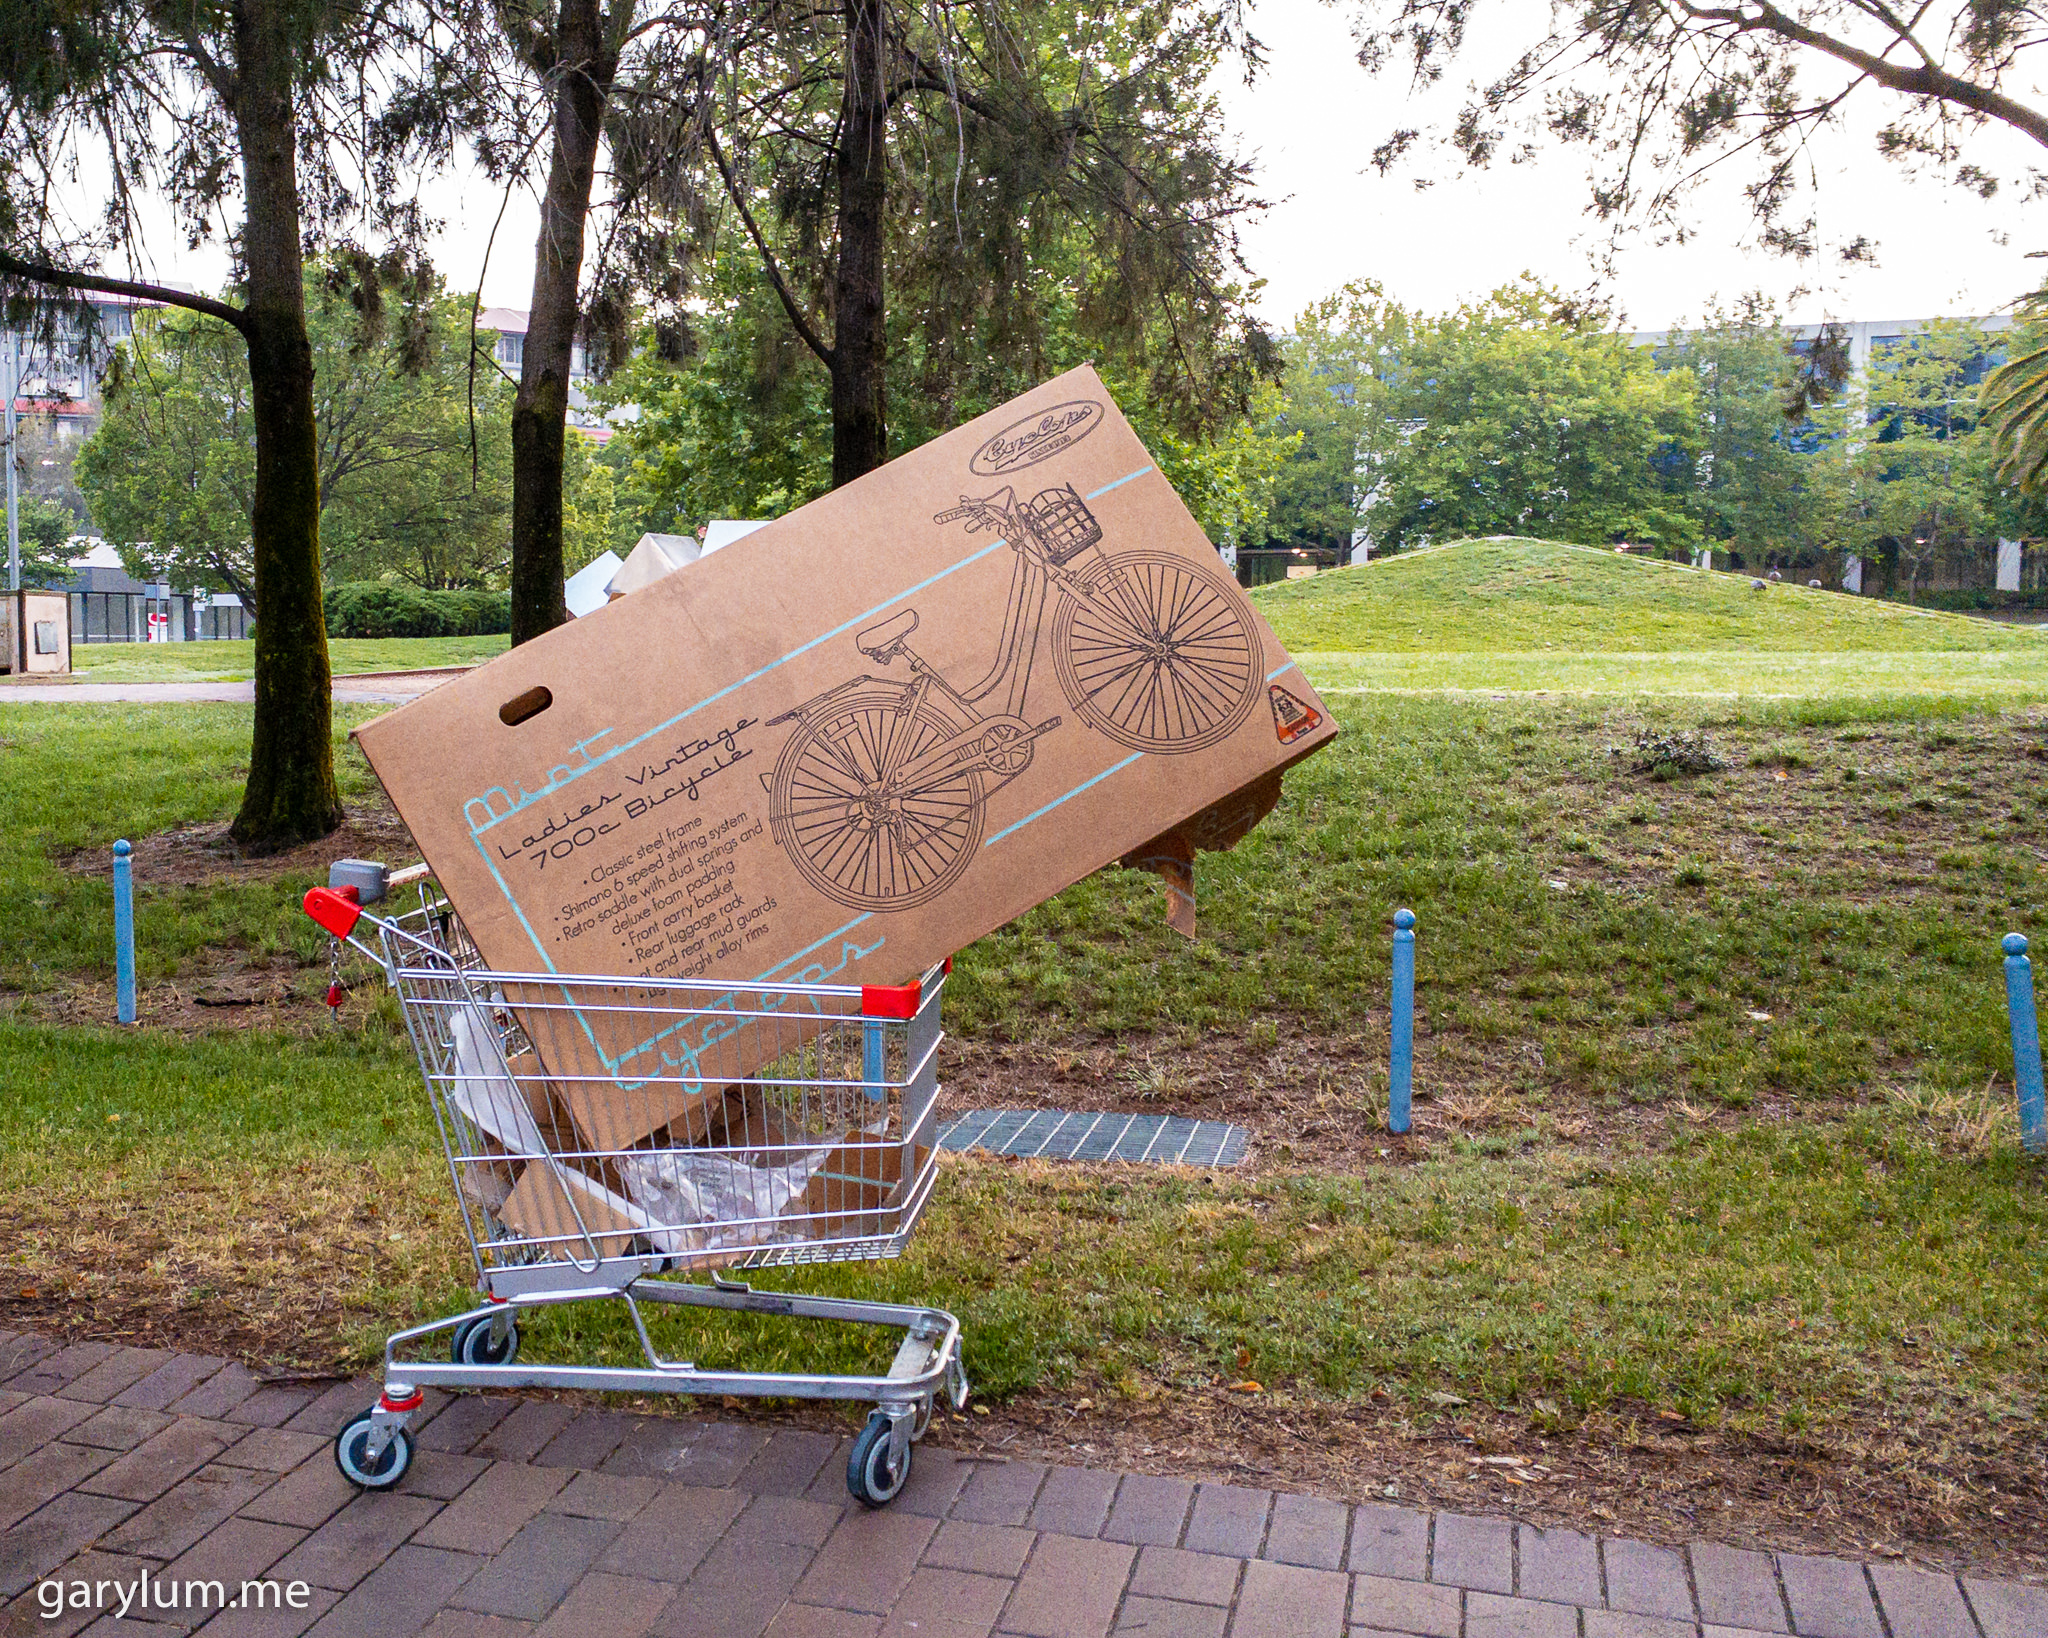 Photograph of Shopping trolley with an empty bicycle box at Margaret Timpson Park, Belconnen. Gary Lum.